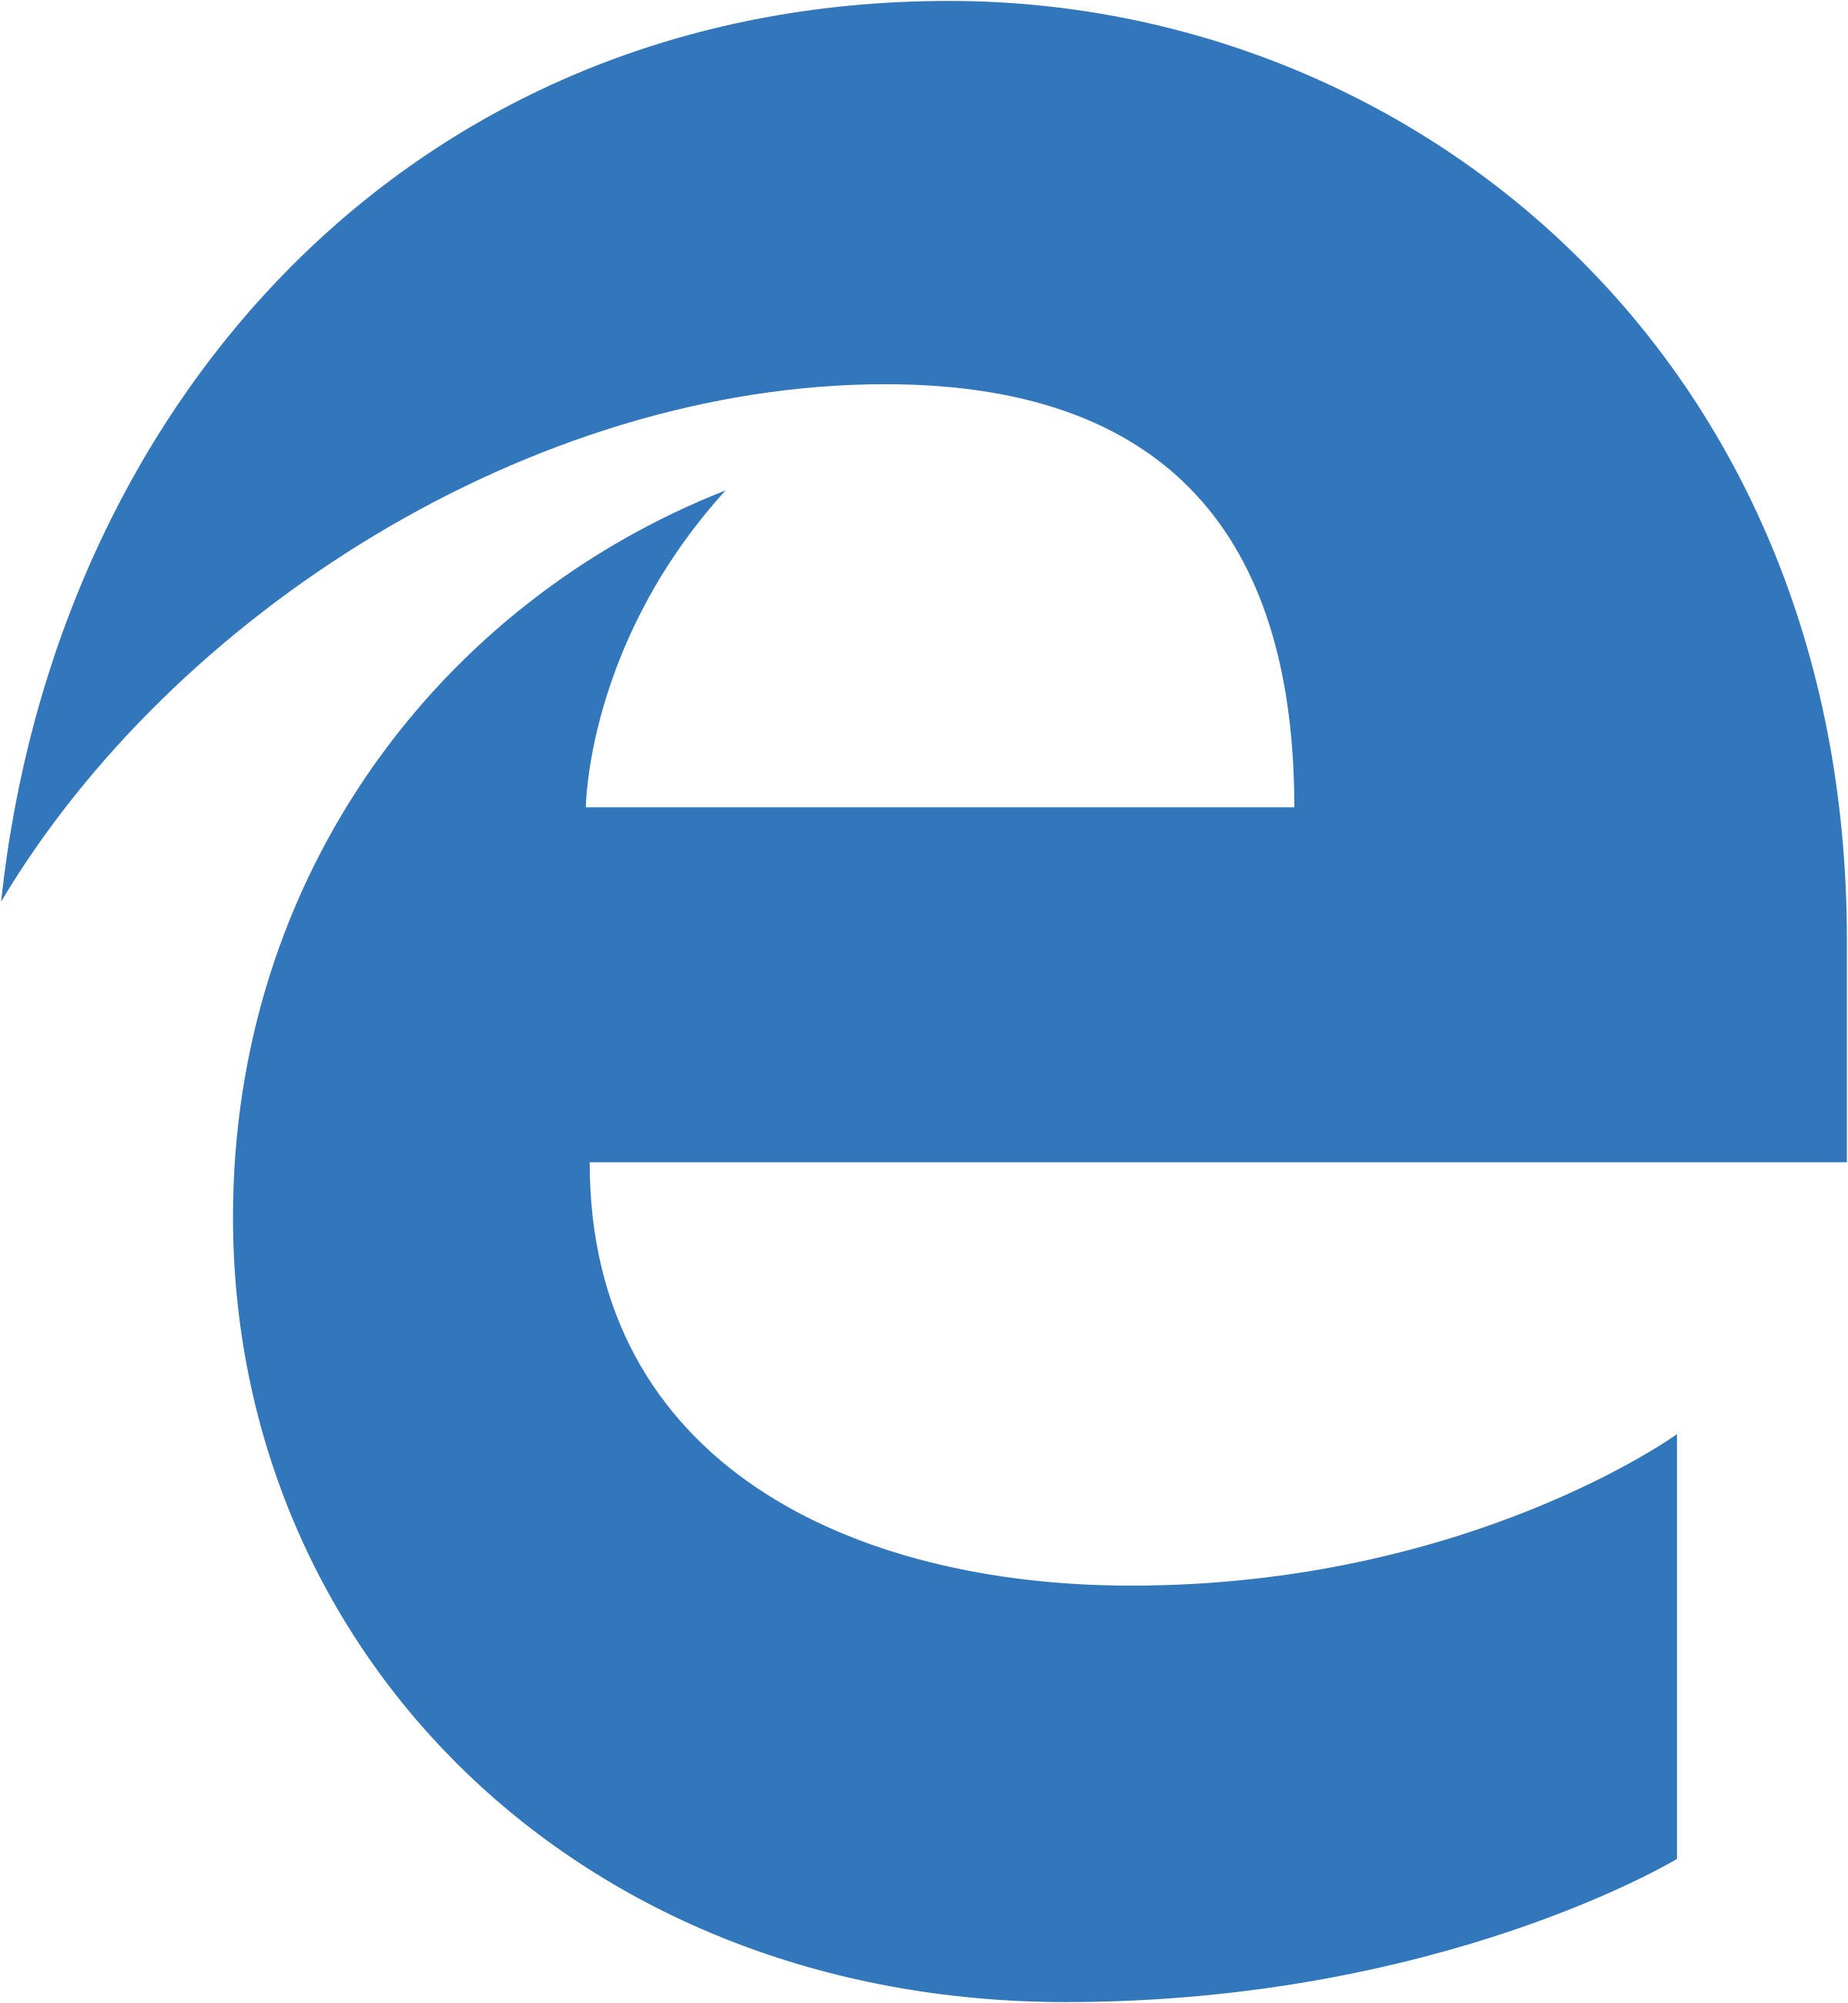 Microsoft Edge Logo PNG Transparent & SVG Vector - Freebie Supply